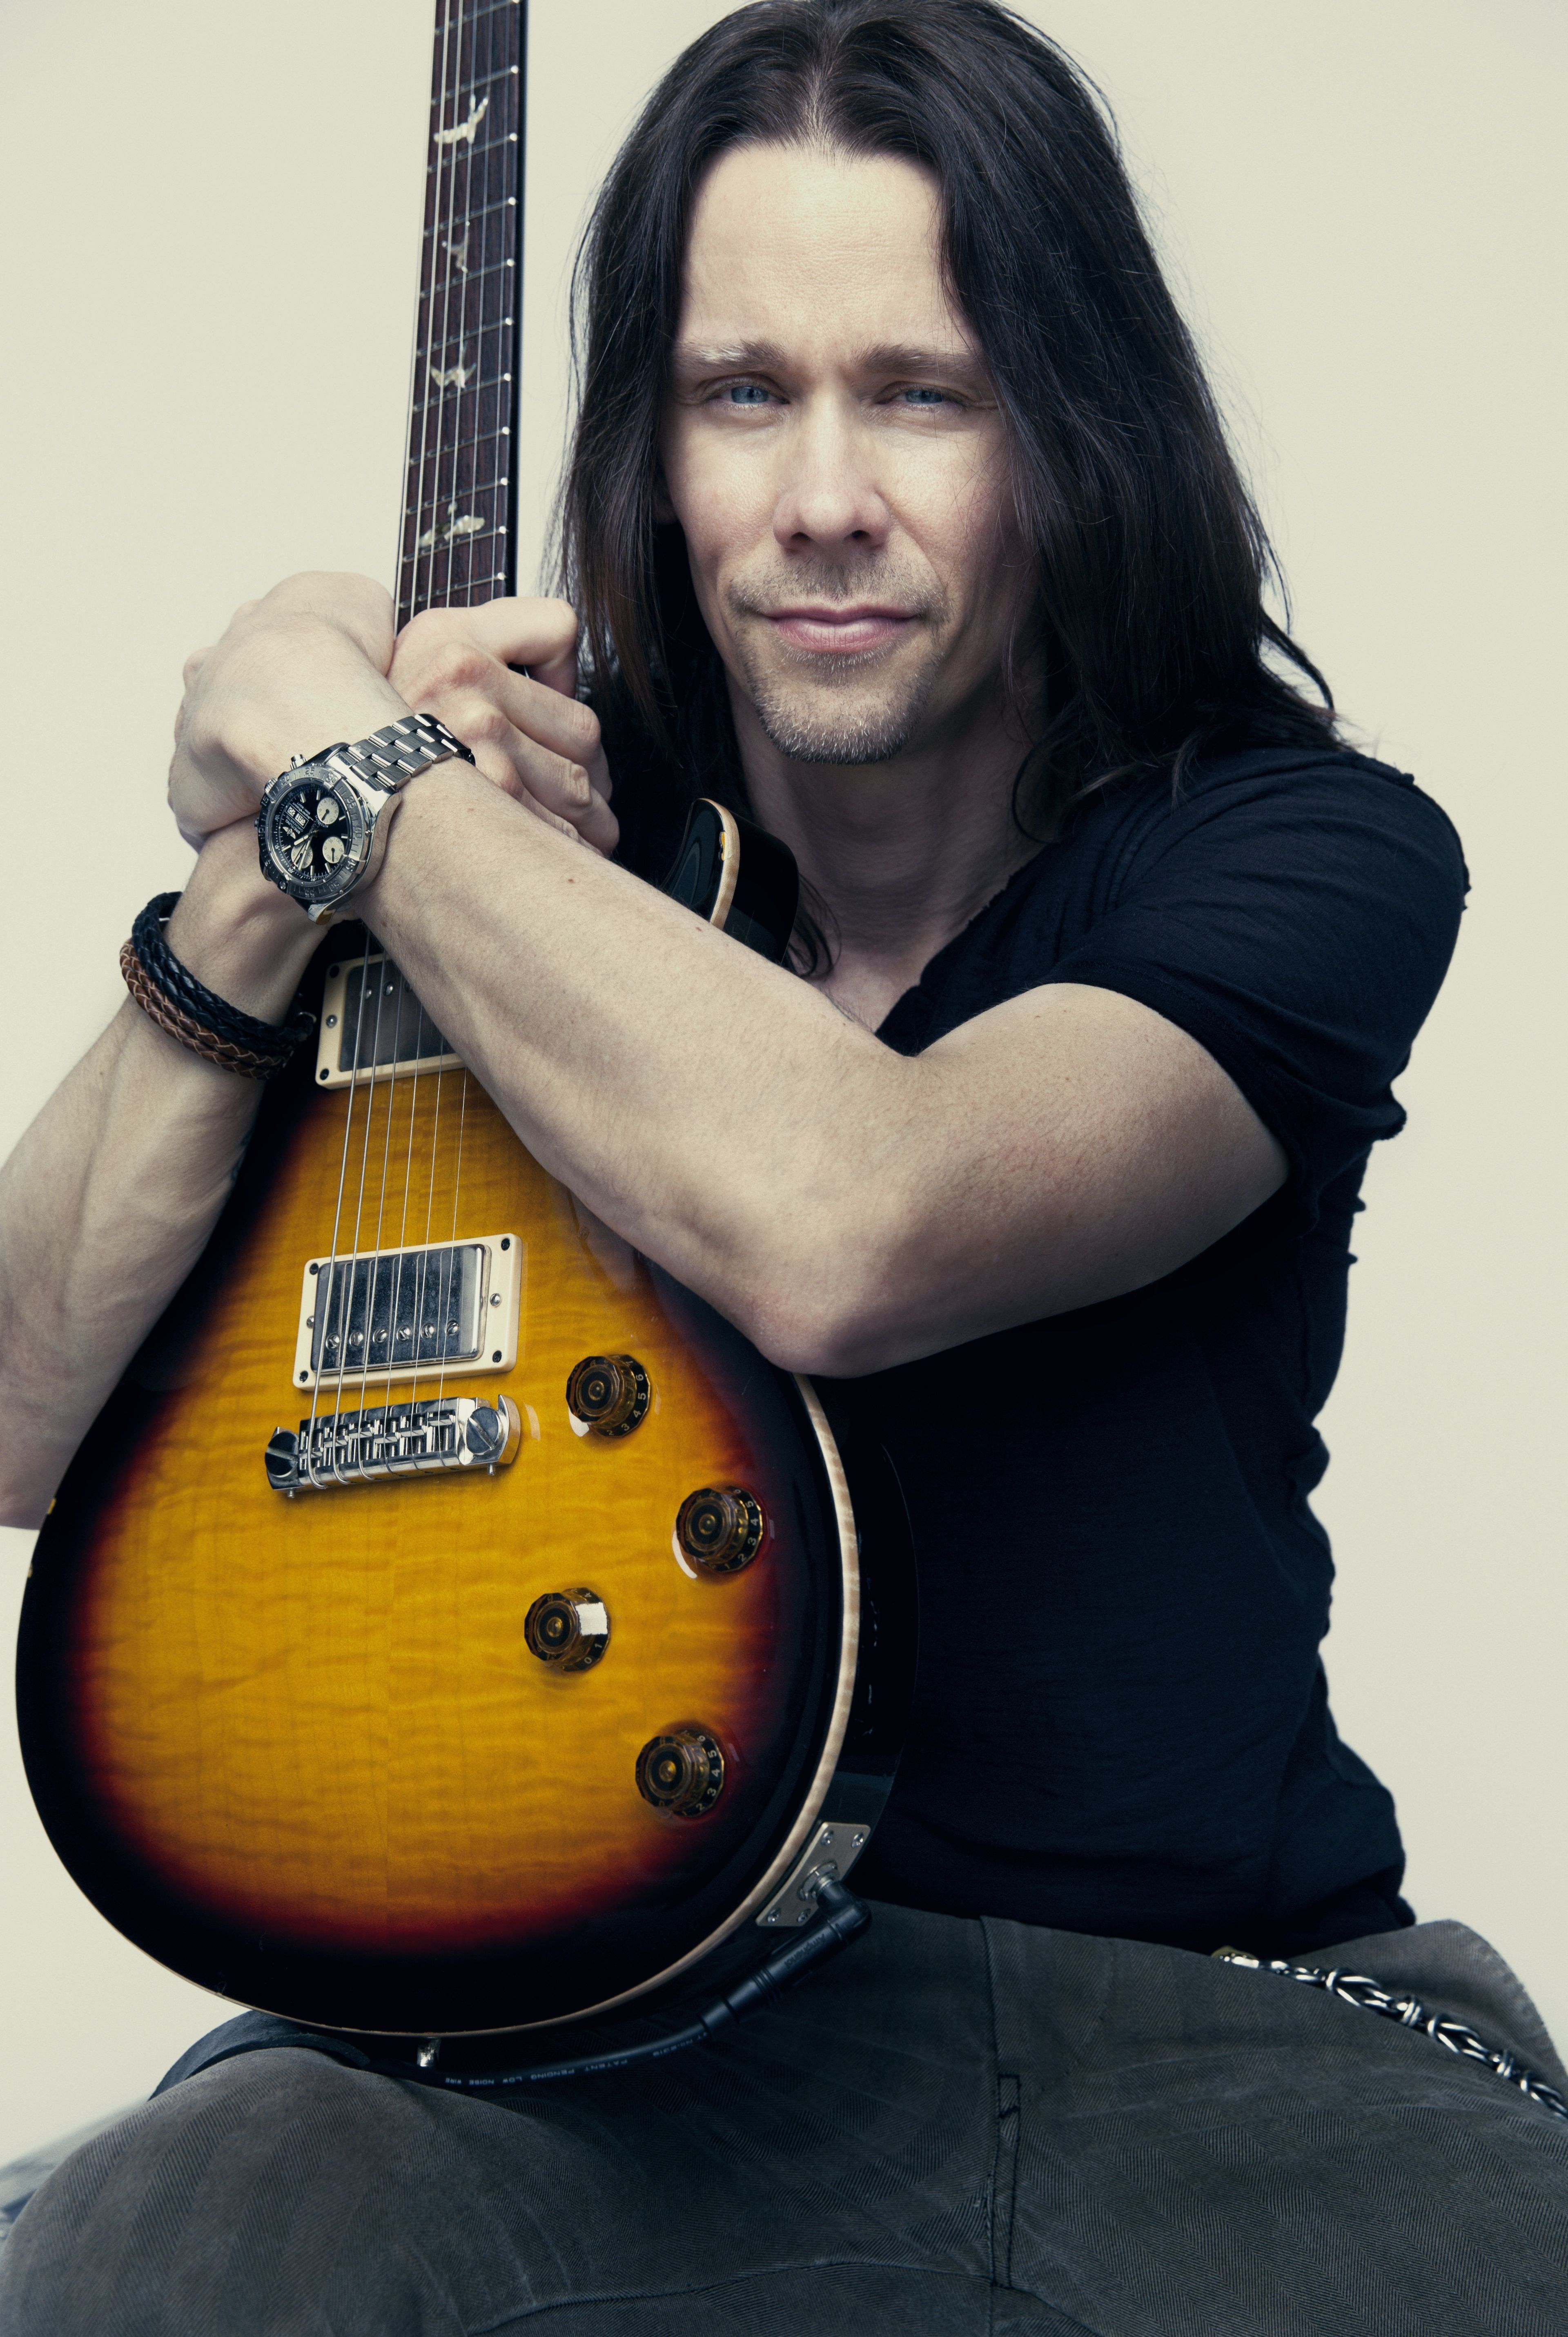 Wwe Logo Hd Wallpaper Myles Kennedy Known People Famous People News And